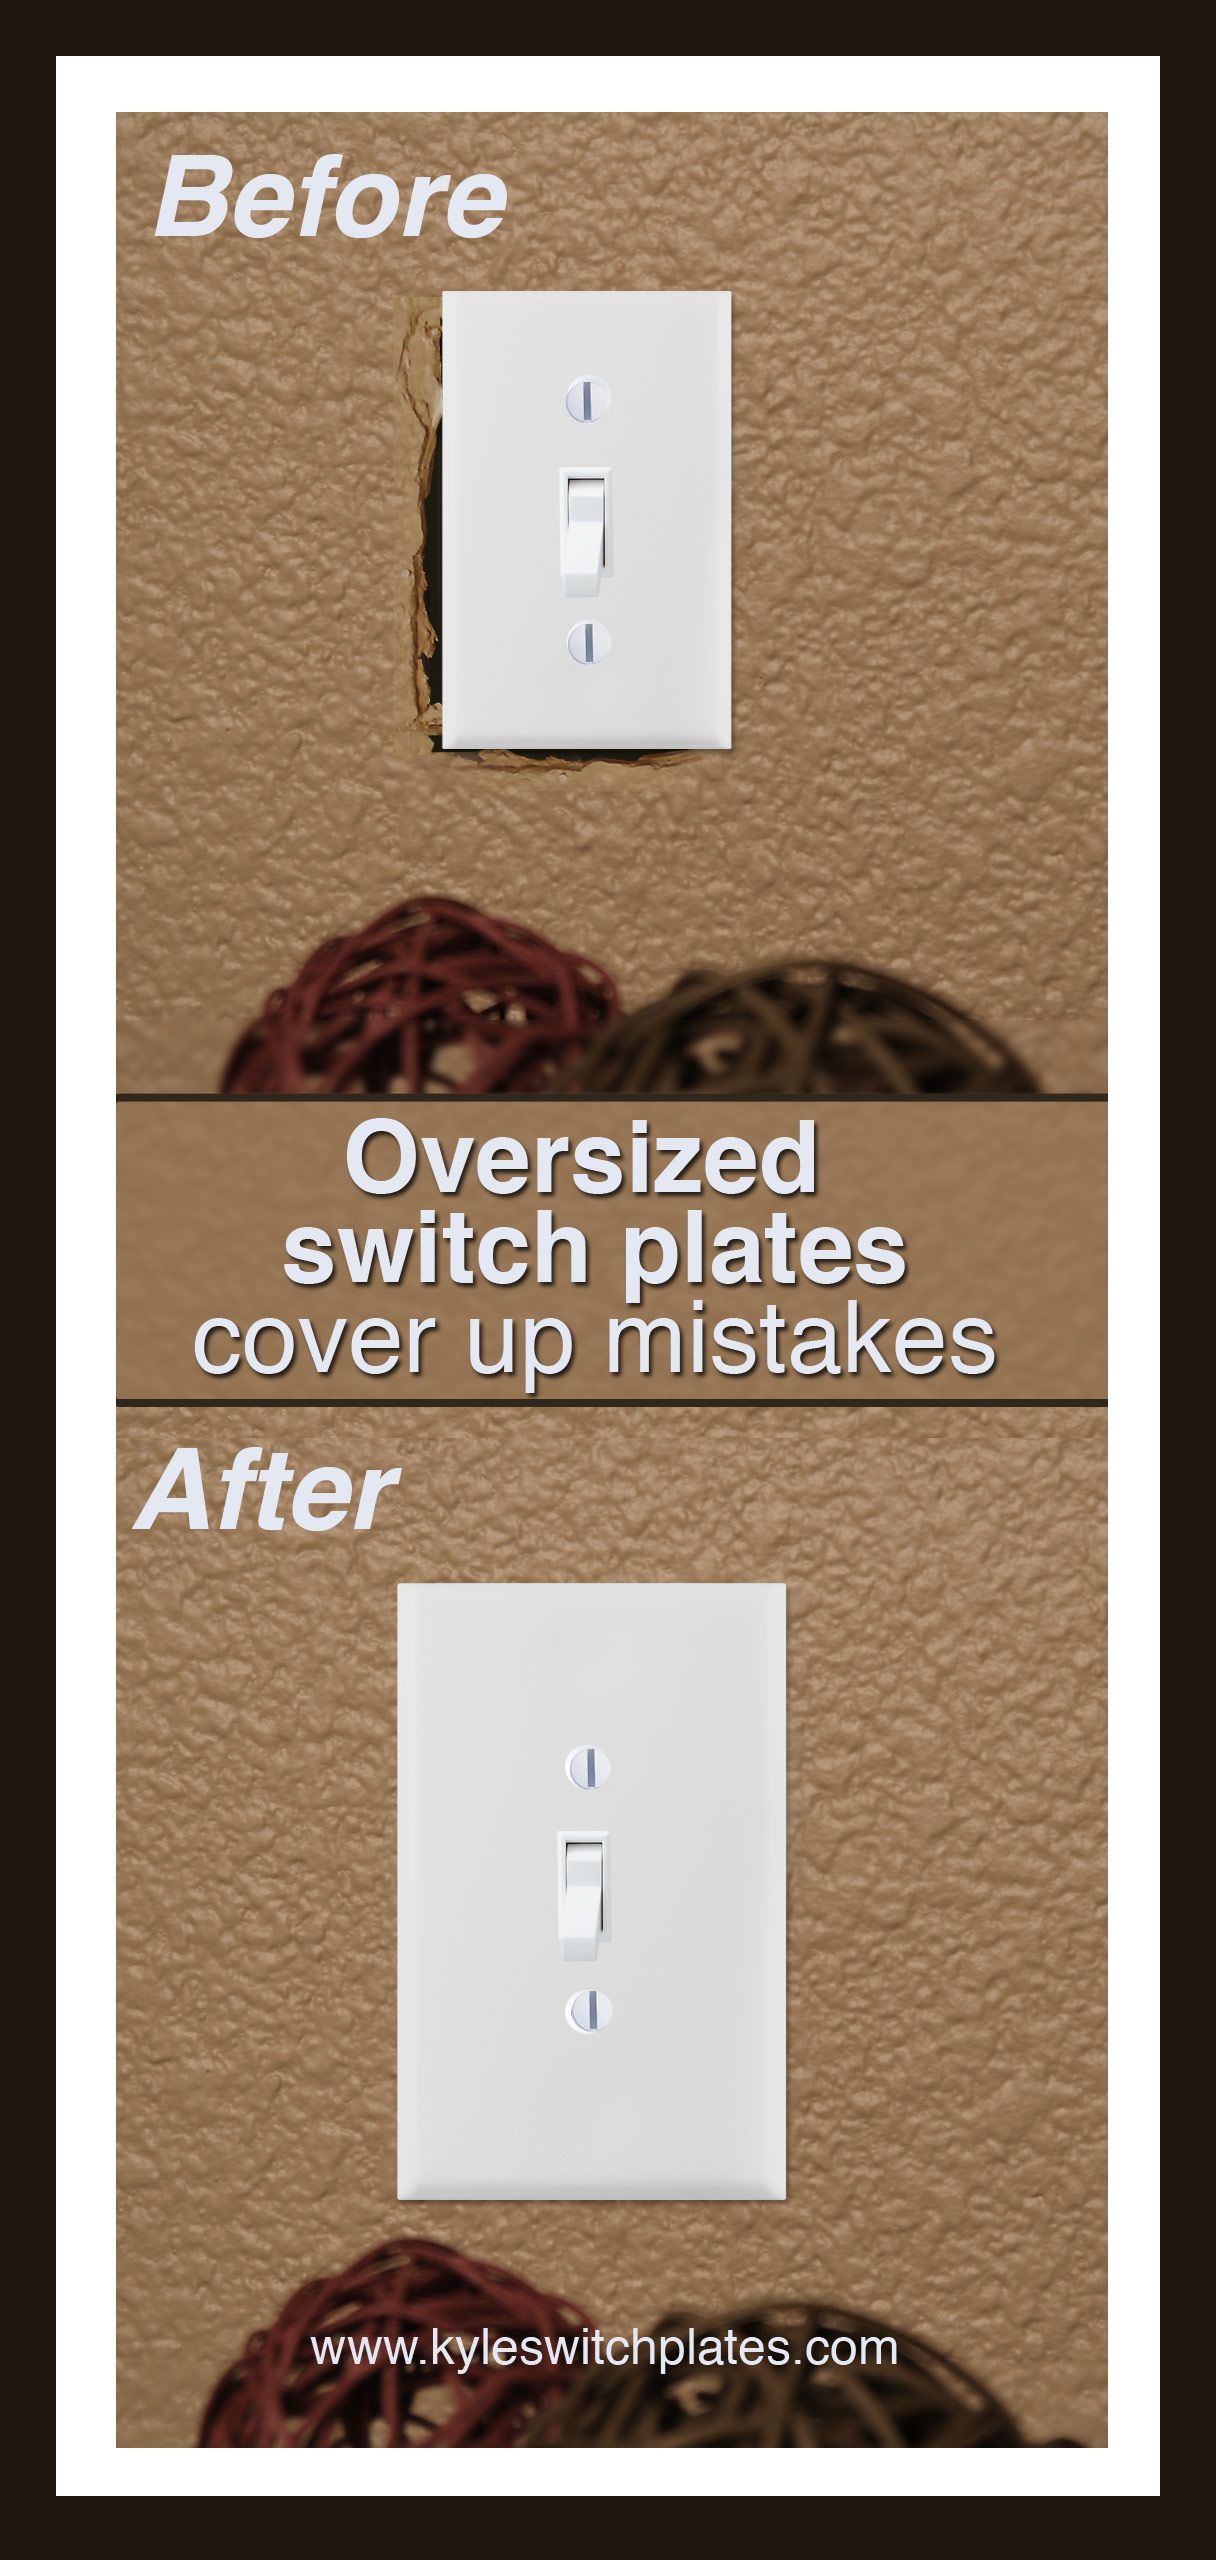 Oversized Outlet Covers Oversized Light Switch Plates & Outlet Covers  Cover Up Hole In